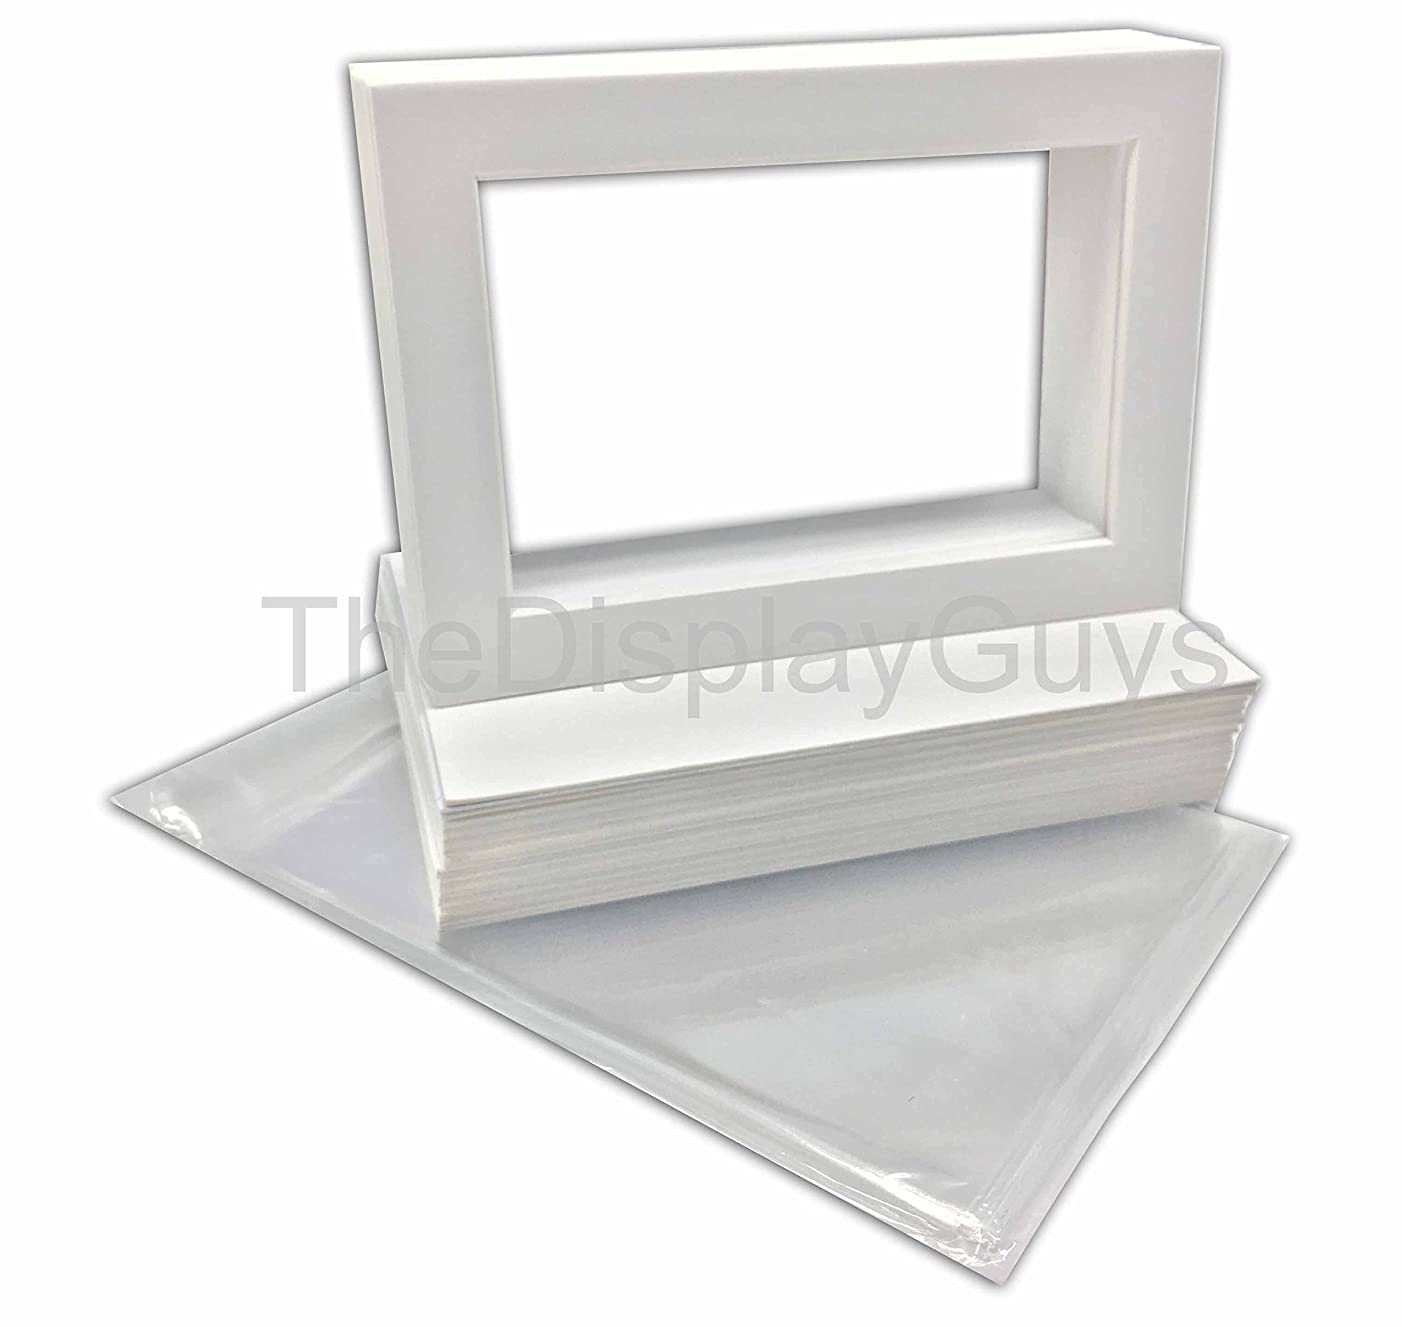 The Display Guys, 25 Sets 5x7 White Picture Photo Matting Mats Board (White Core Bevel Cut), White Back Board, Clear Plastic Bags (25pcs White Complete Set)